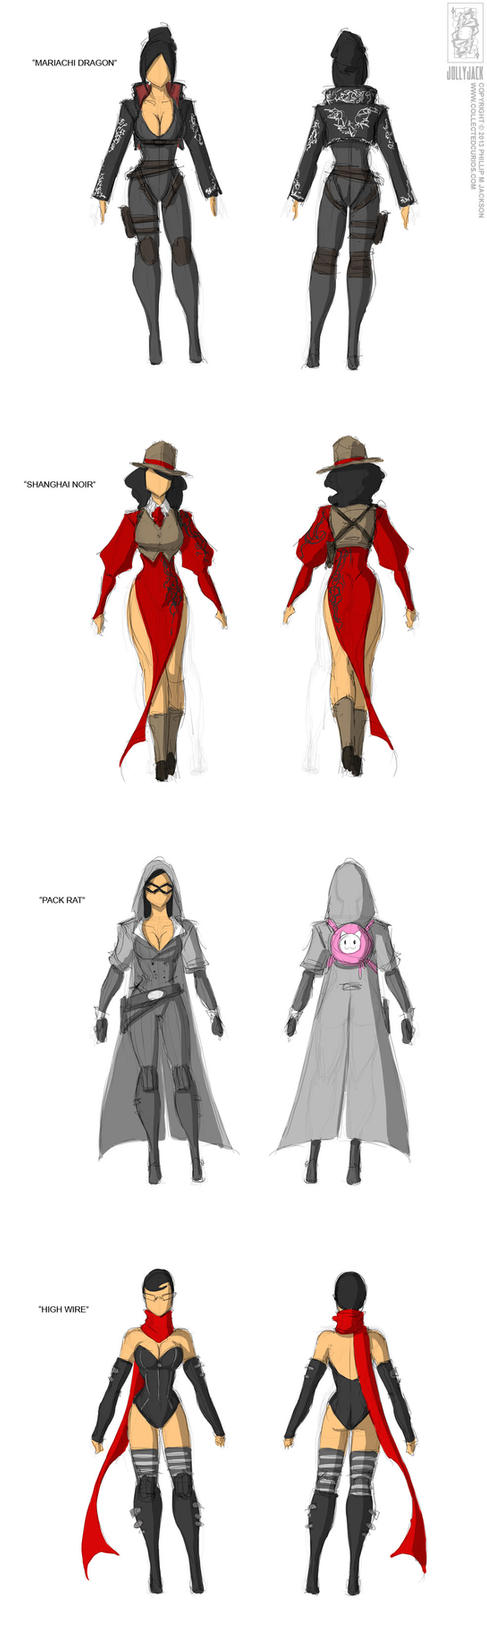 Costume Designs 2013-02-19 by jollyjack